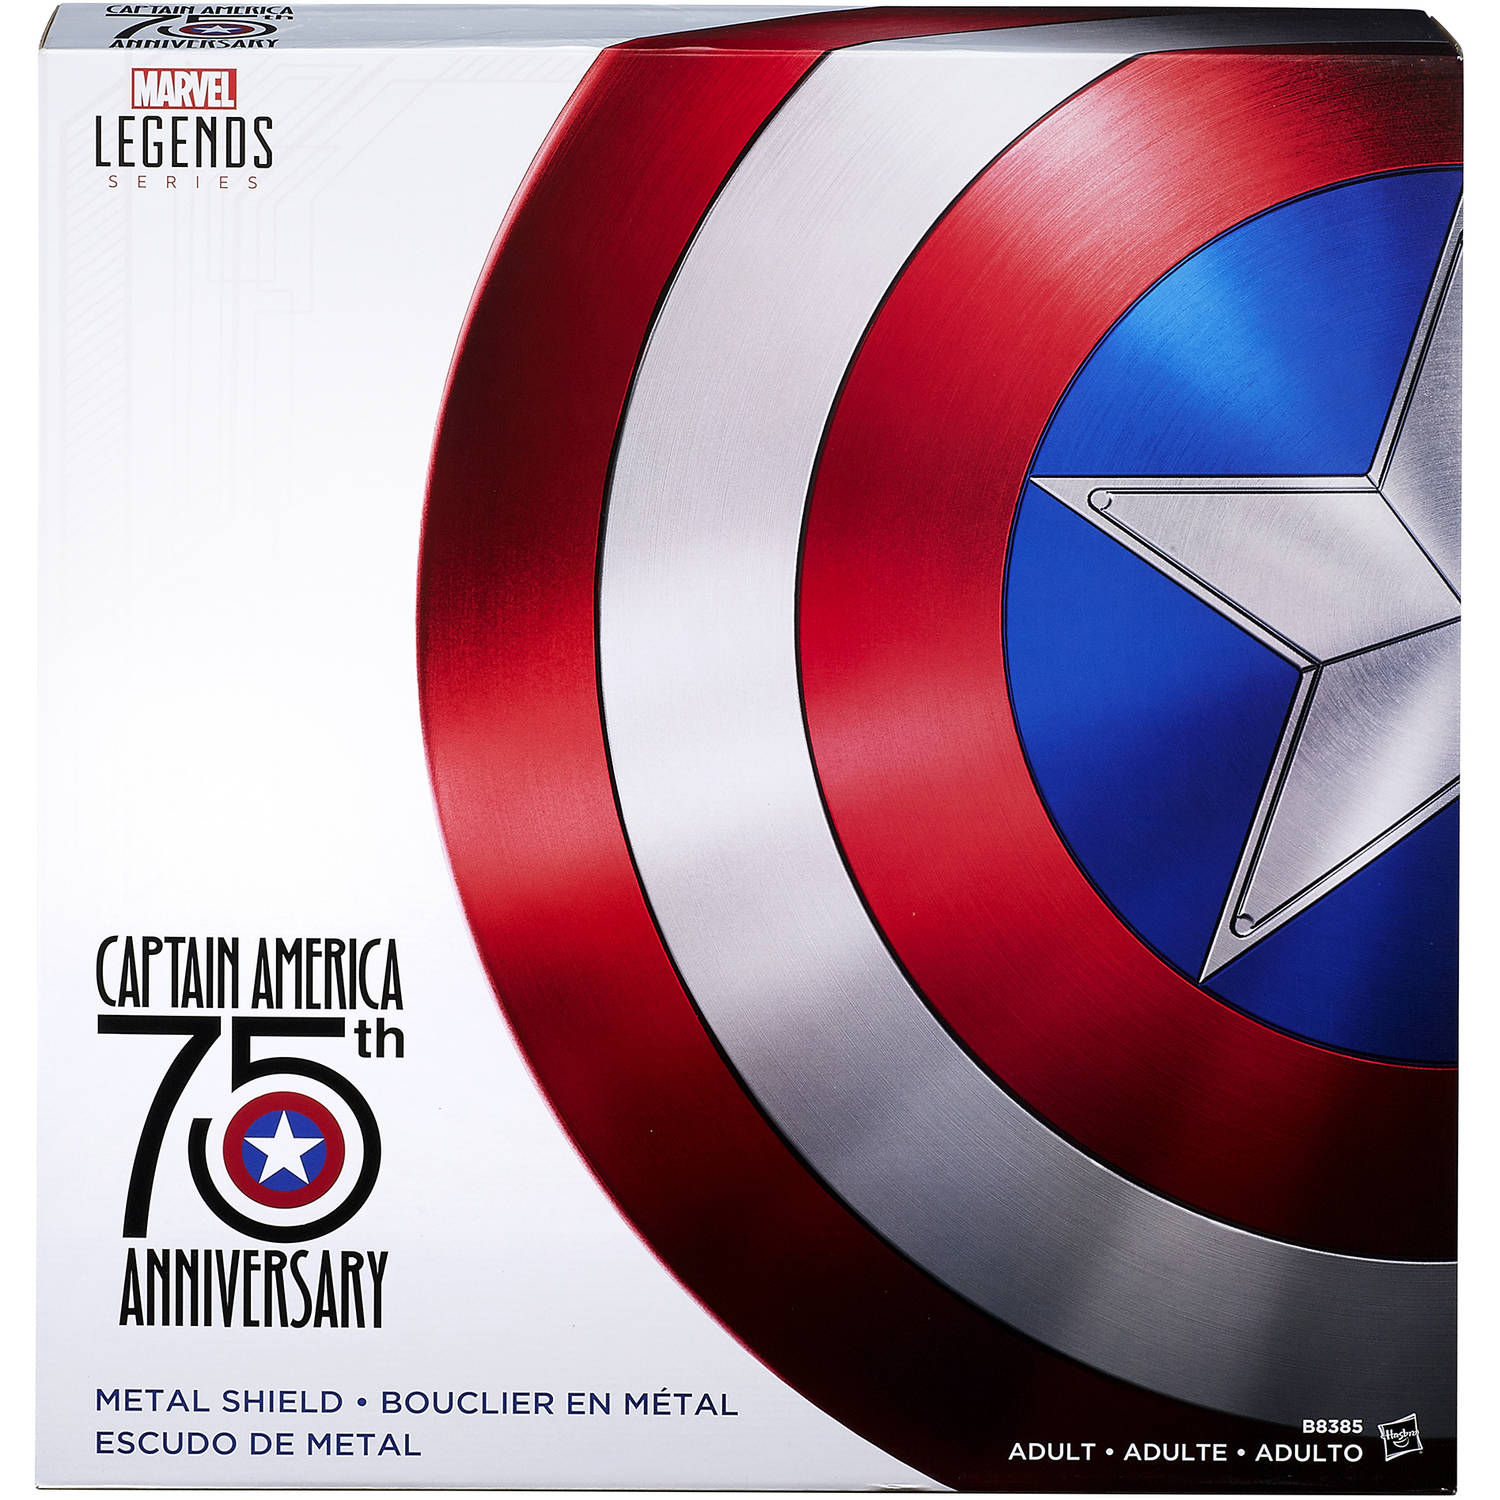 marvel legends captain america 75th anniversary metal shield walmartcom - Bouclier Captain America